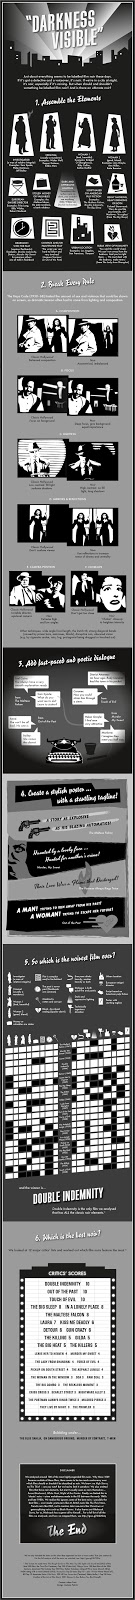 https://www.behance.net/gallery/28159163/Film-noir-infographic-for-BFI